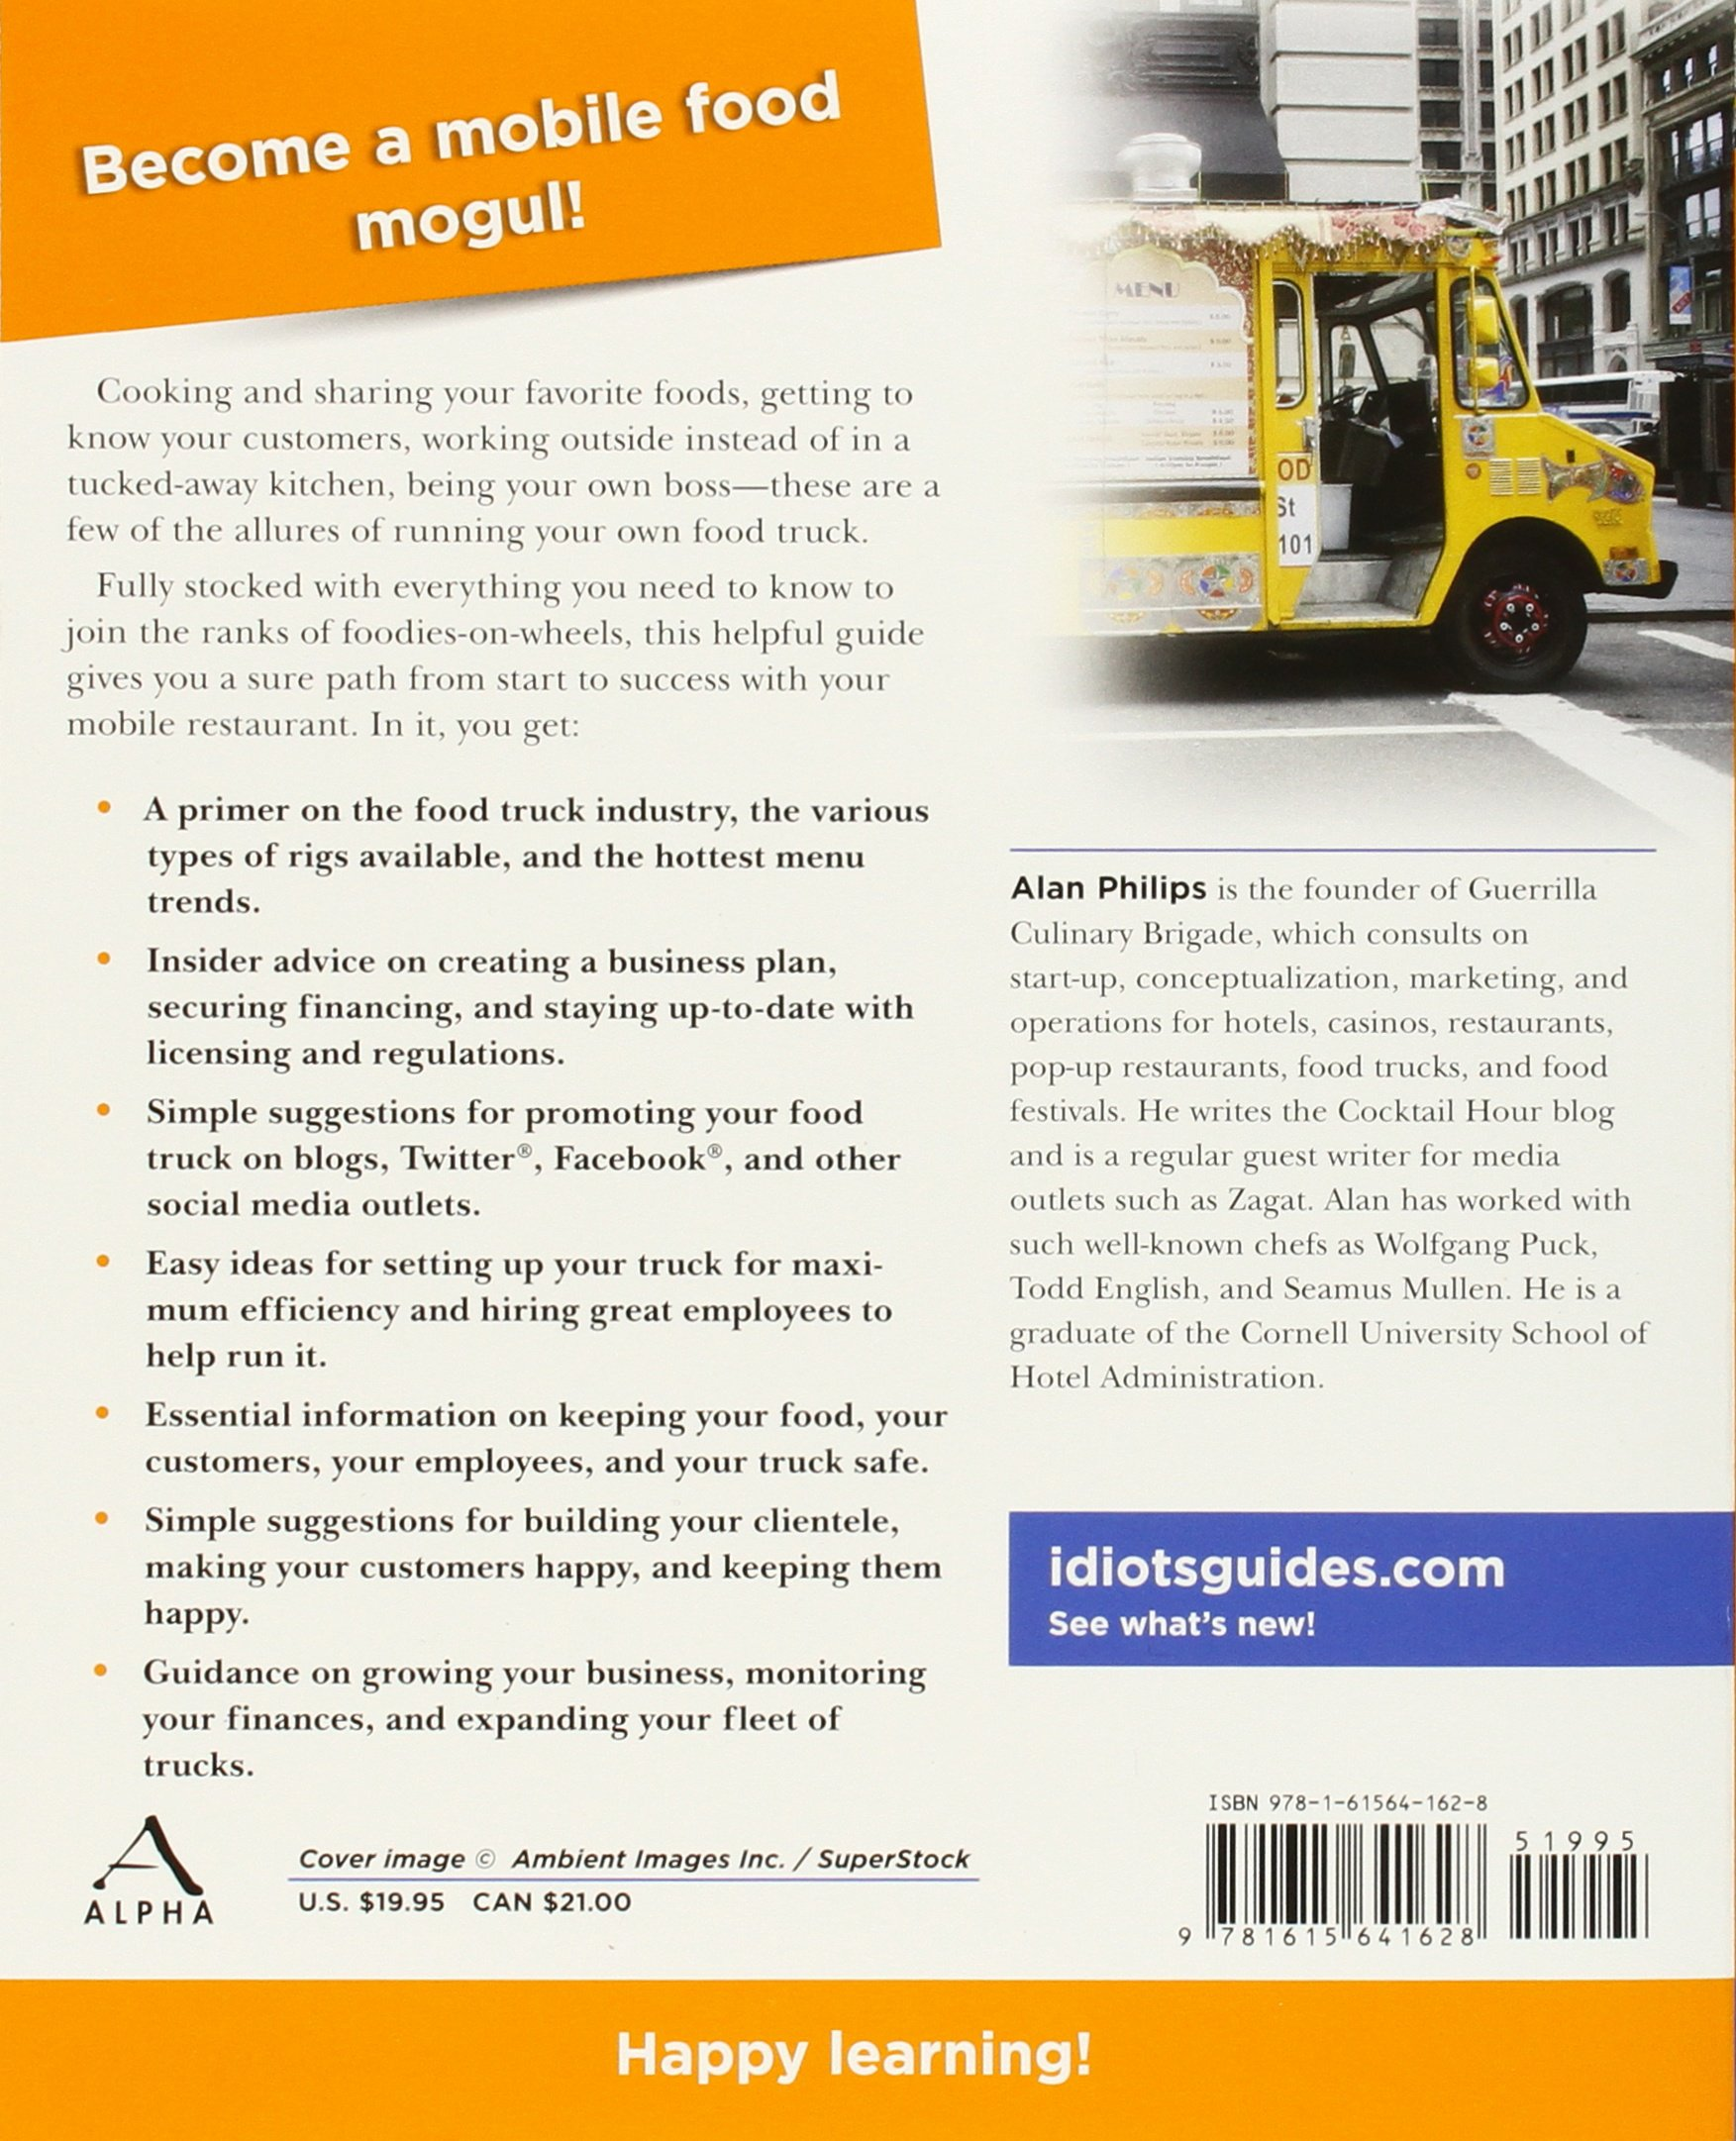 the complete idiot s guide to starting a food truck business alan rh amazon com Food Truck Business Ideas Food Truck Business Ideas